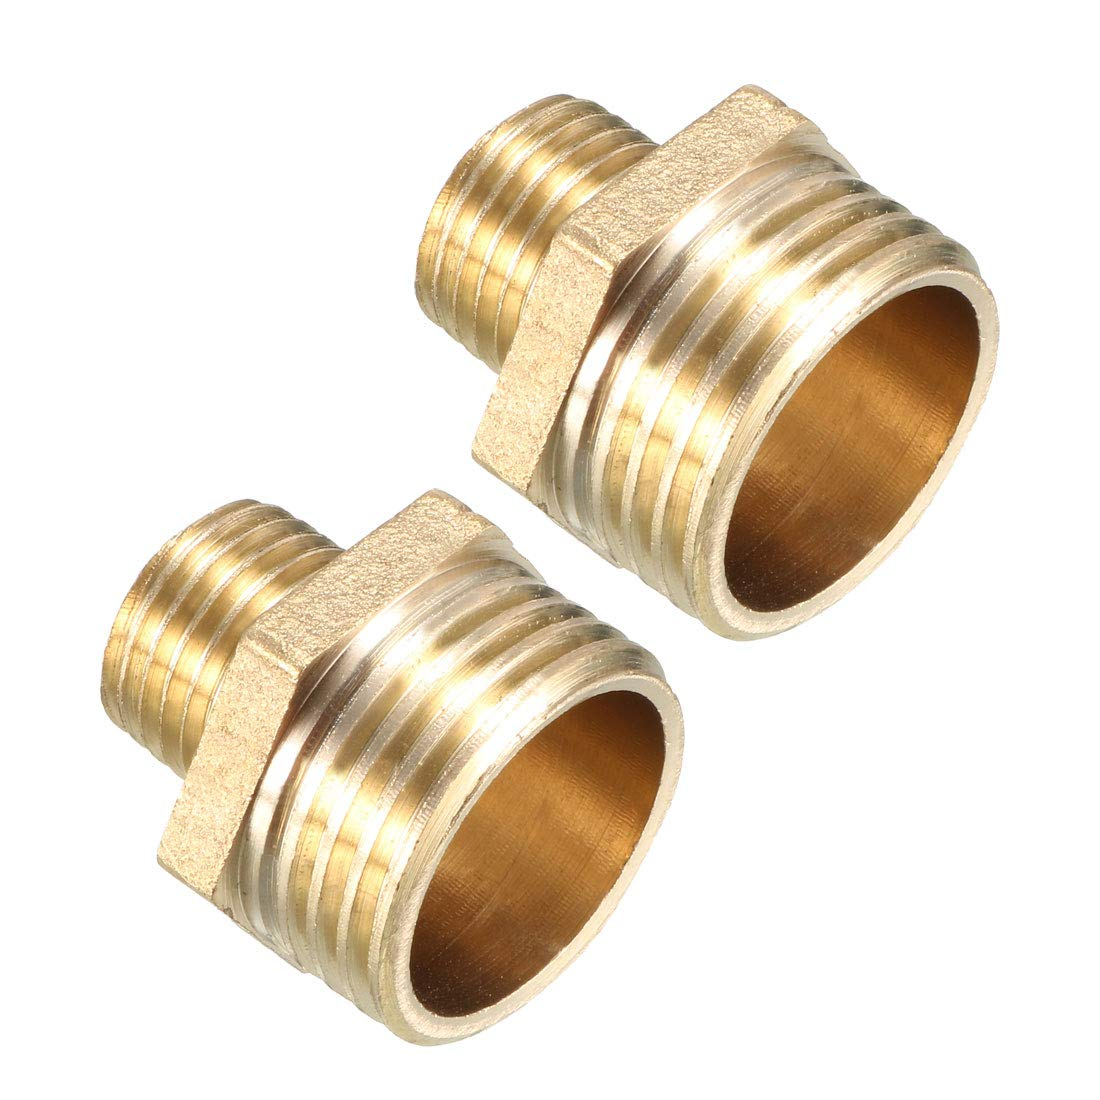 uxcell Brass Pipe Fitting Reducing Hex Nipple 1//2 BSP Male x 1//4 BSP Male Adapter 2pcs